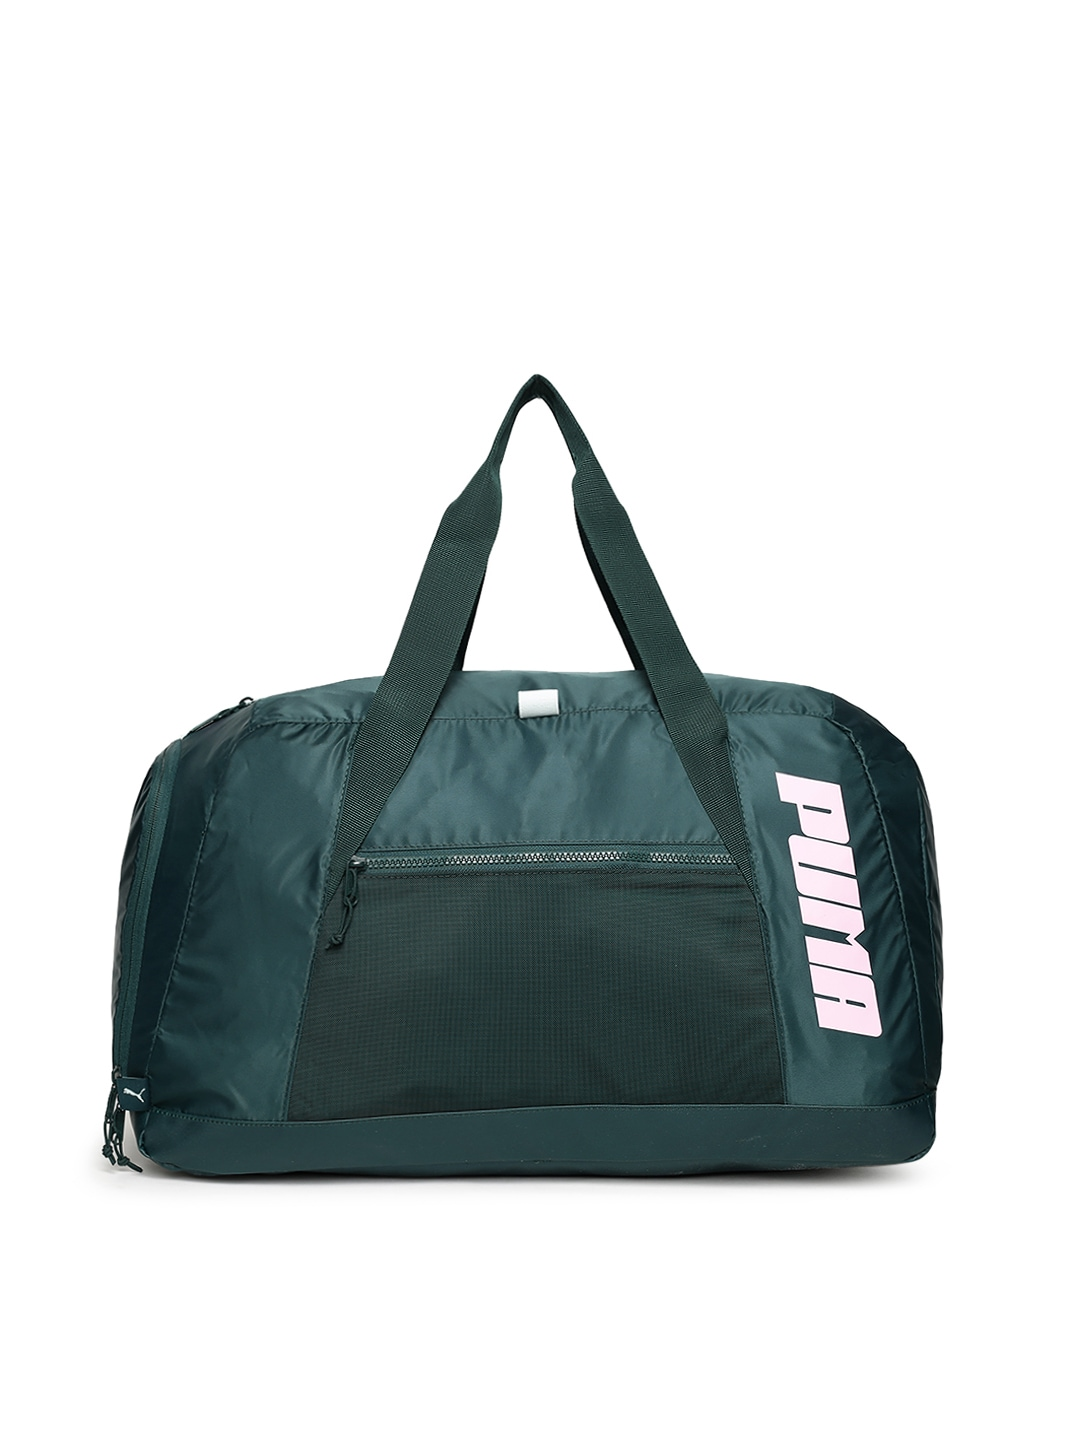 ebfed77c6f54 Puma Bag - Buy Puma Bags Online in India